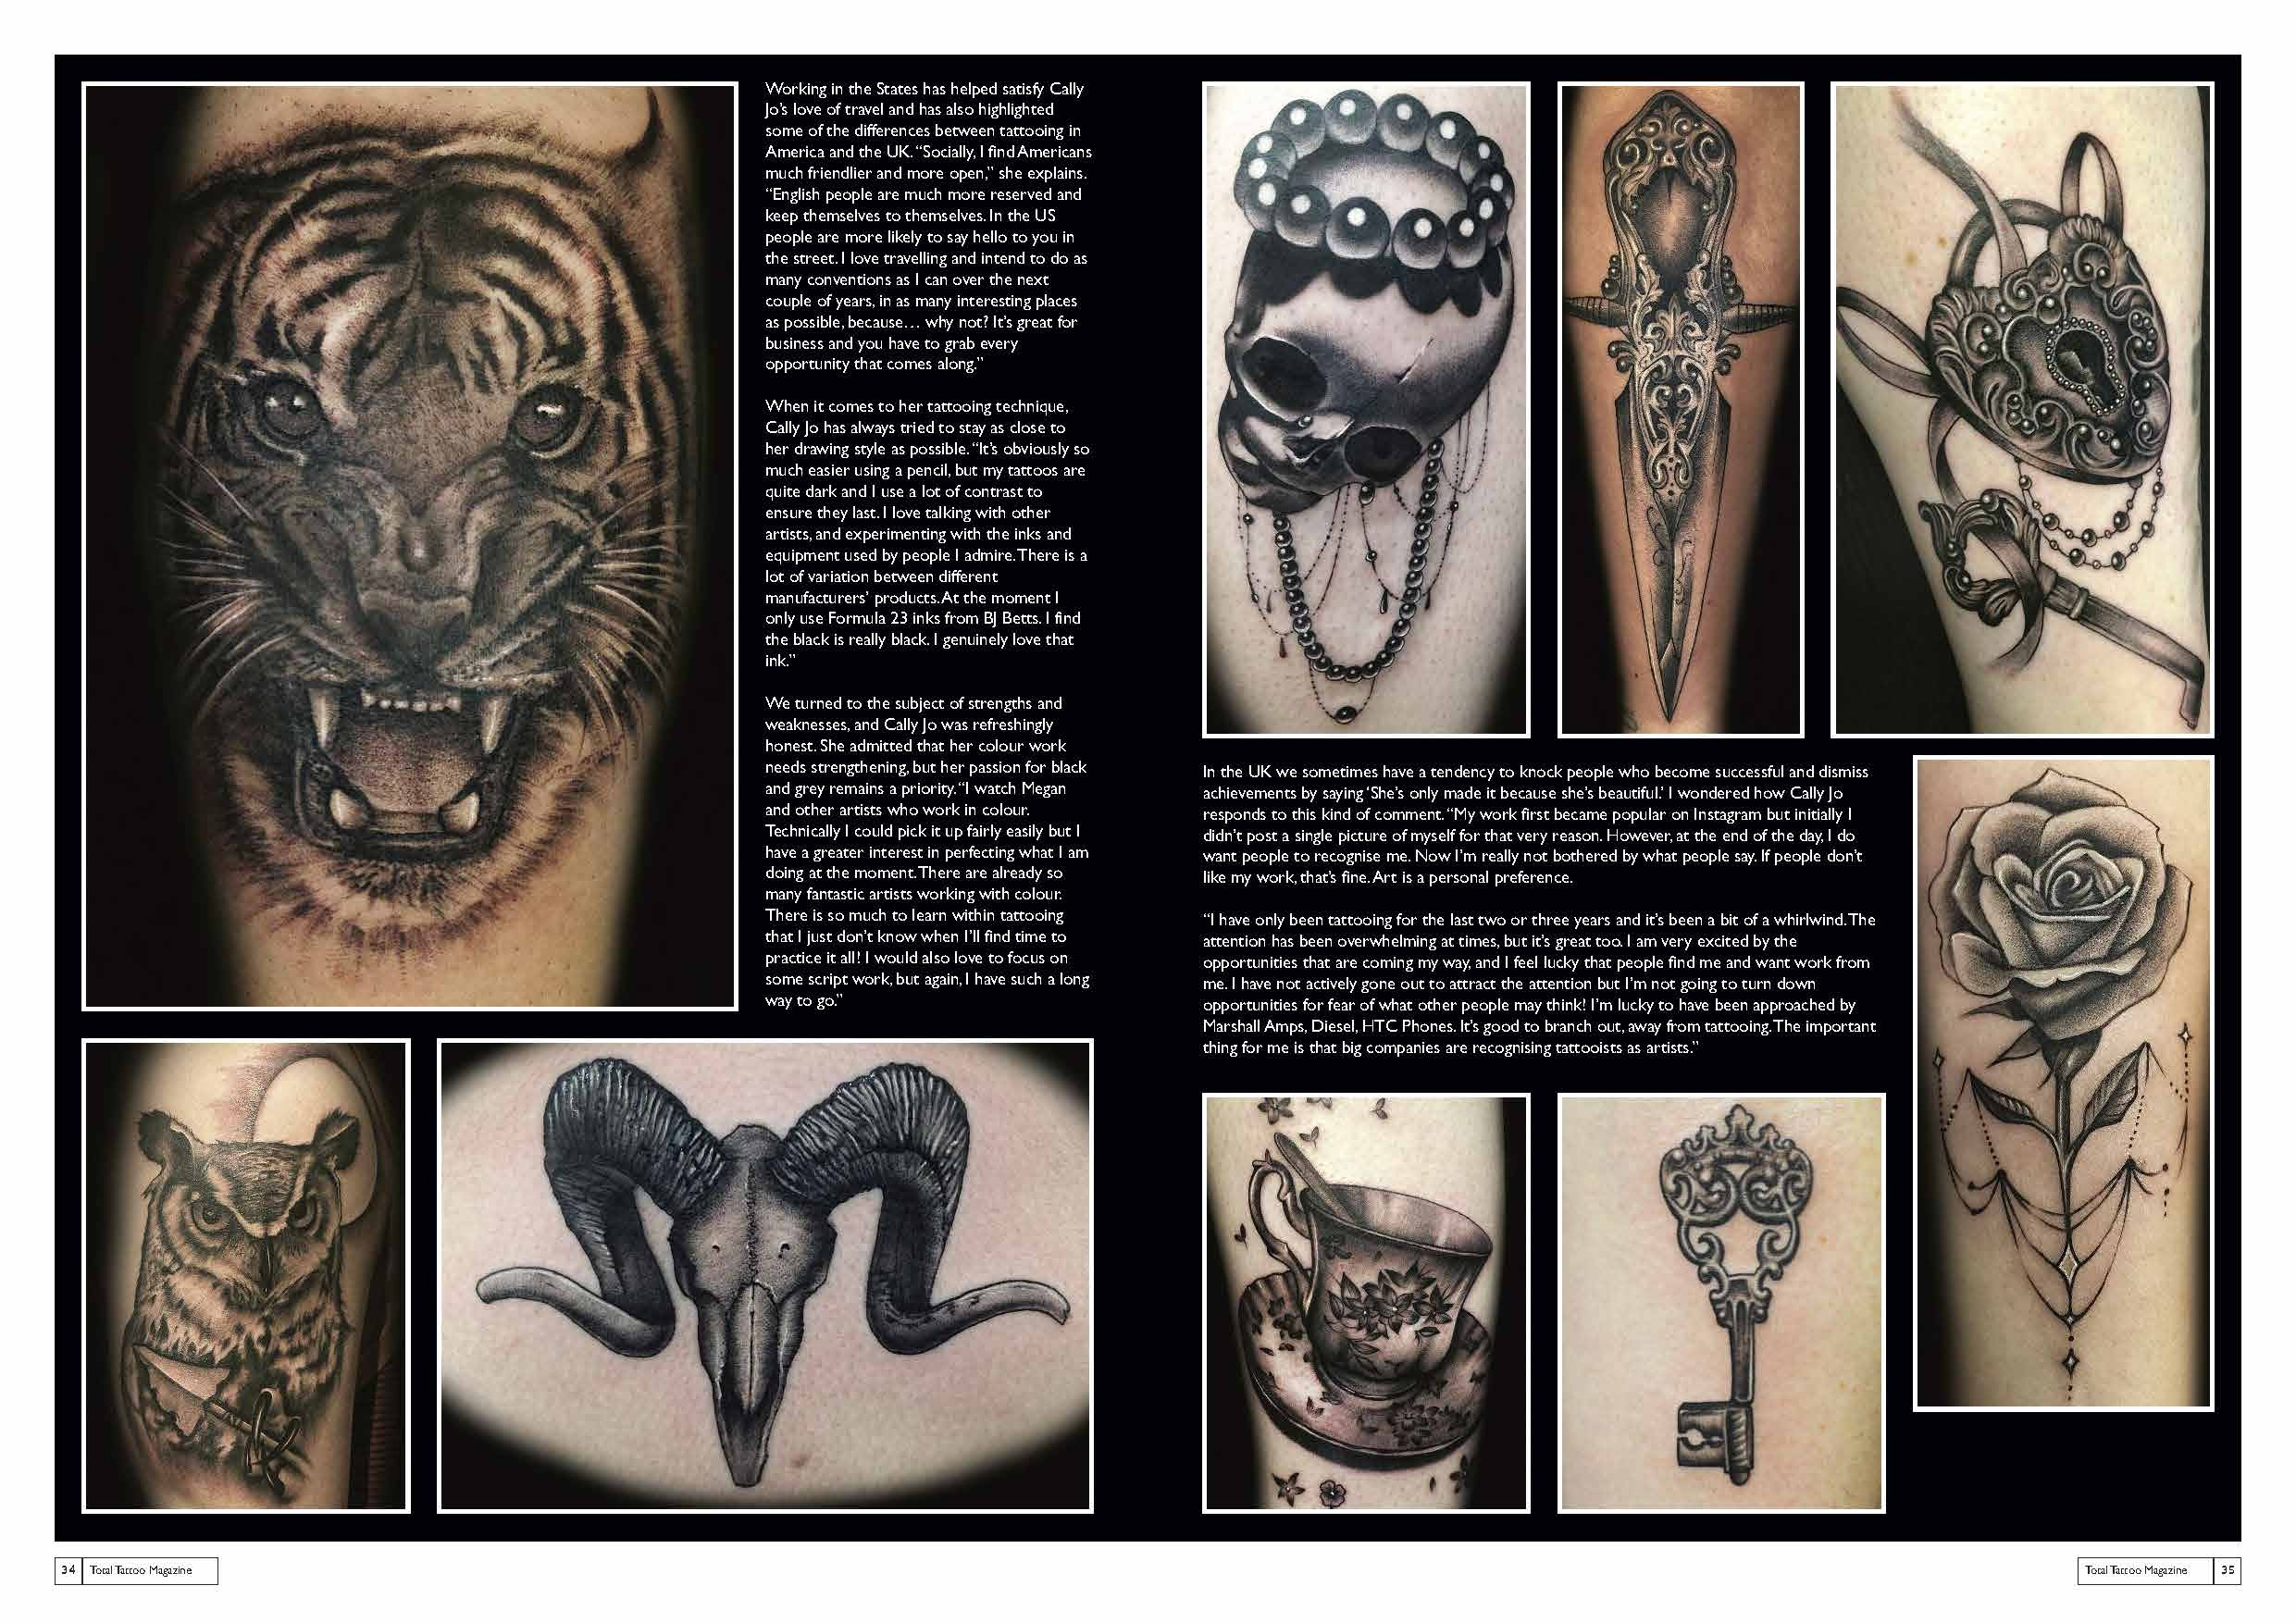 CallyJoTotalTattoo_Page_2.jpg